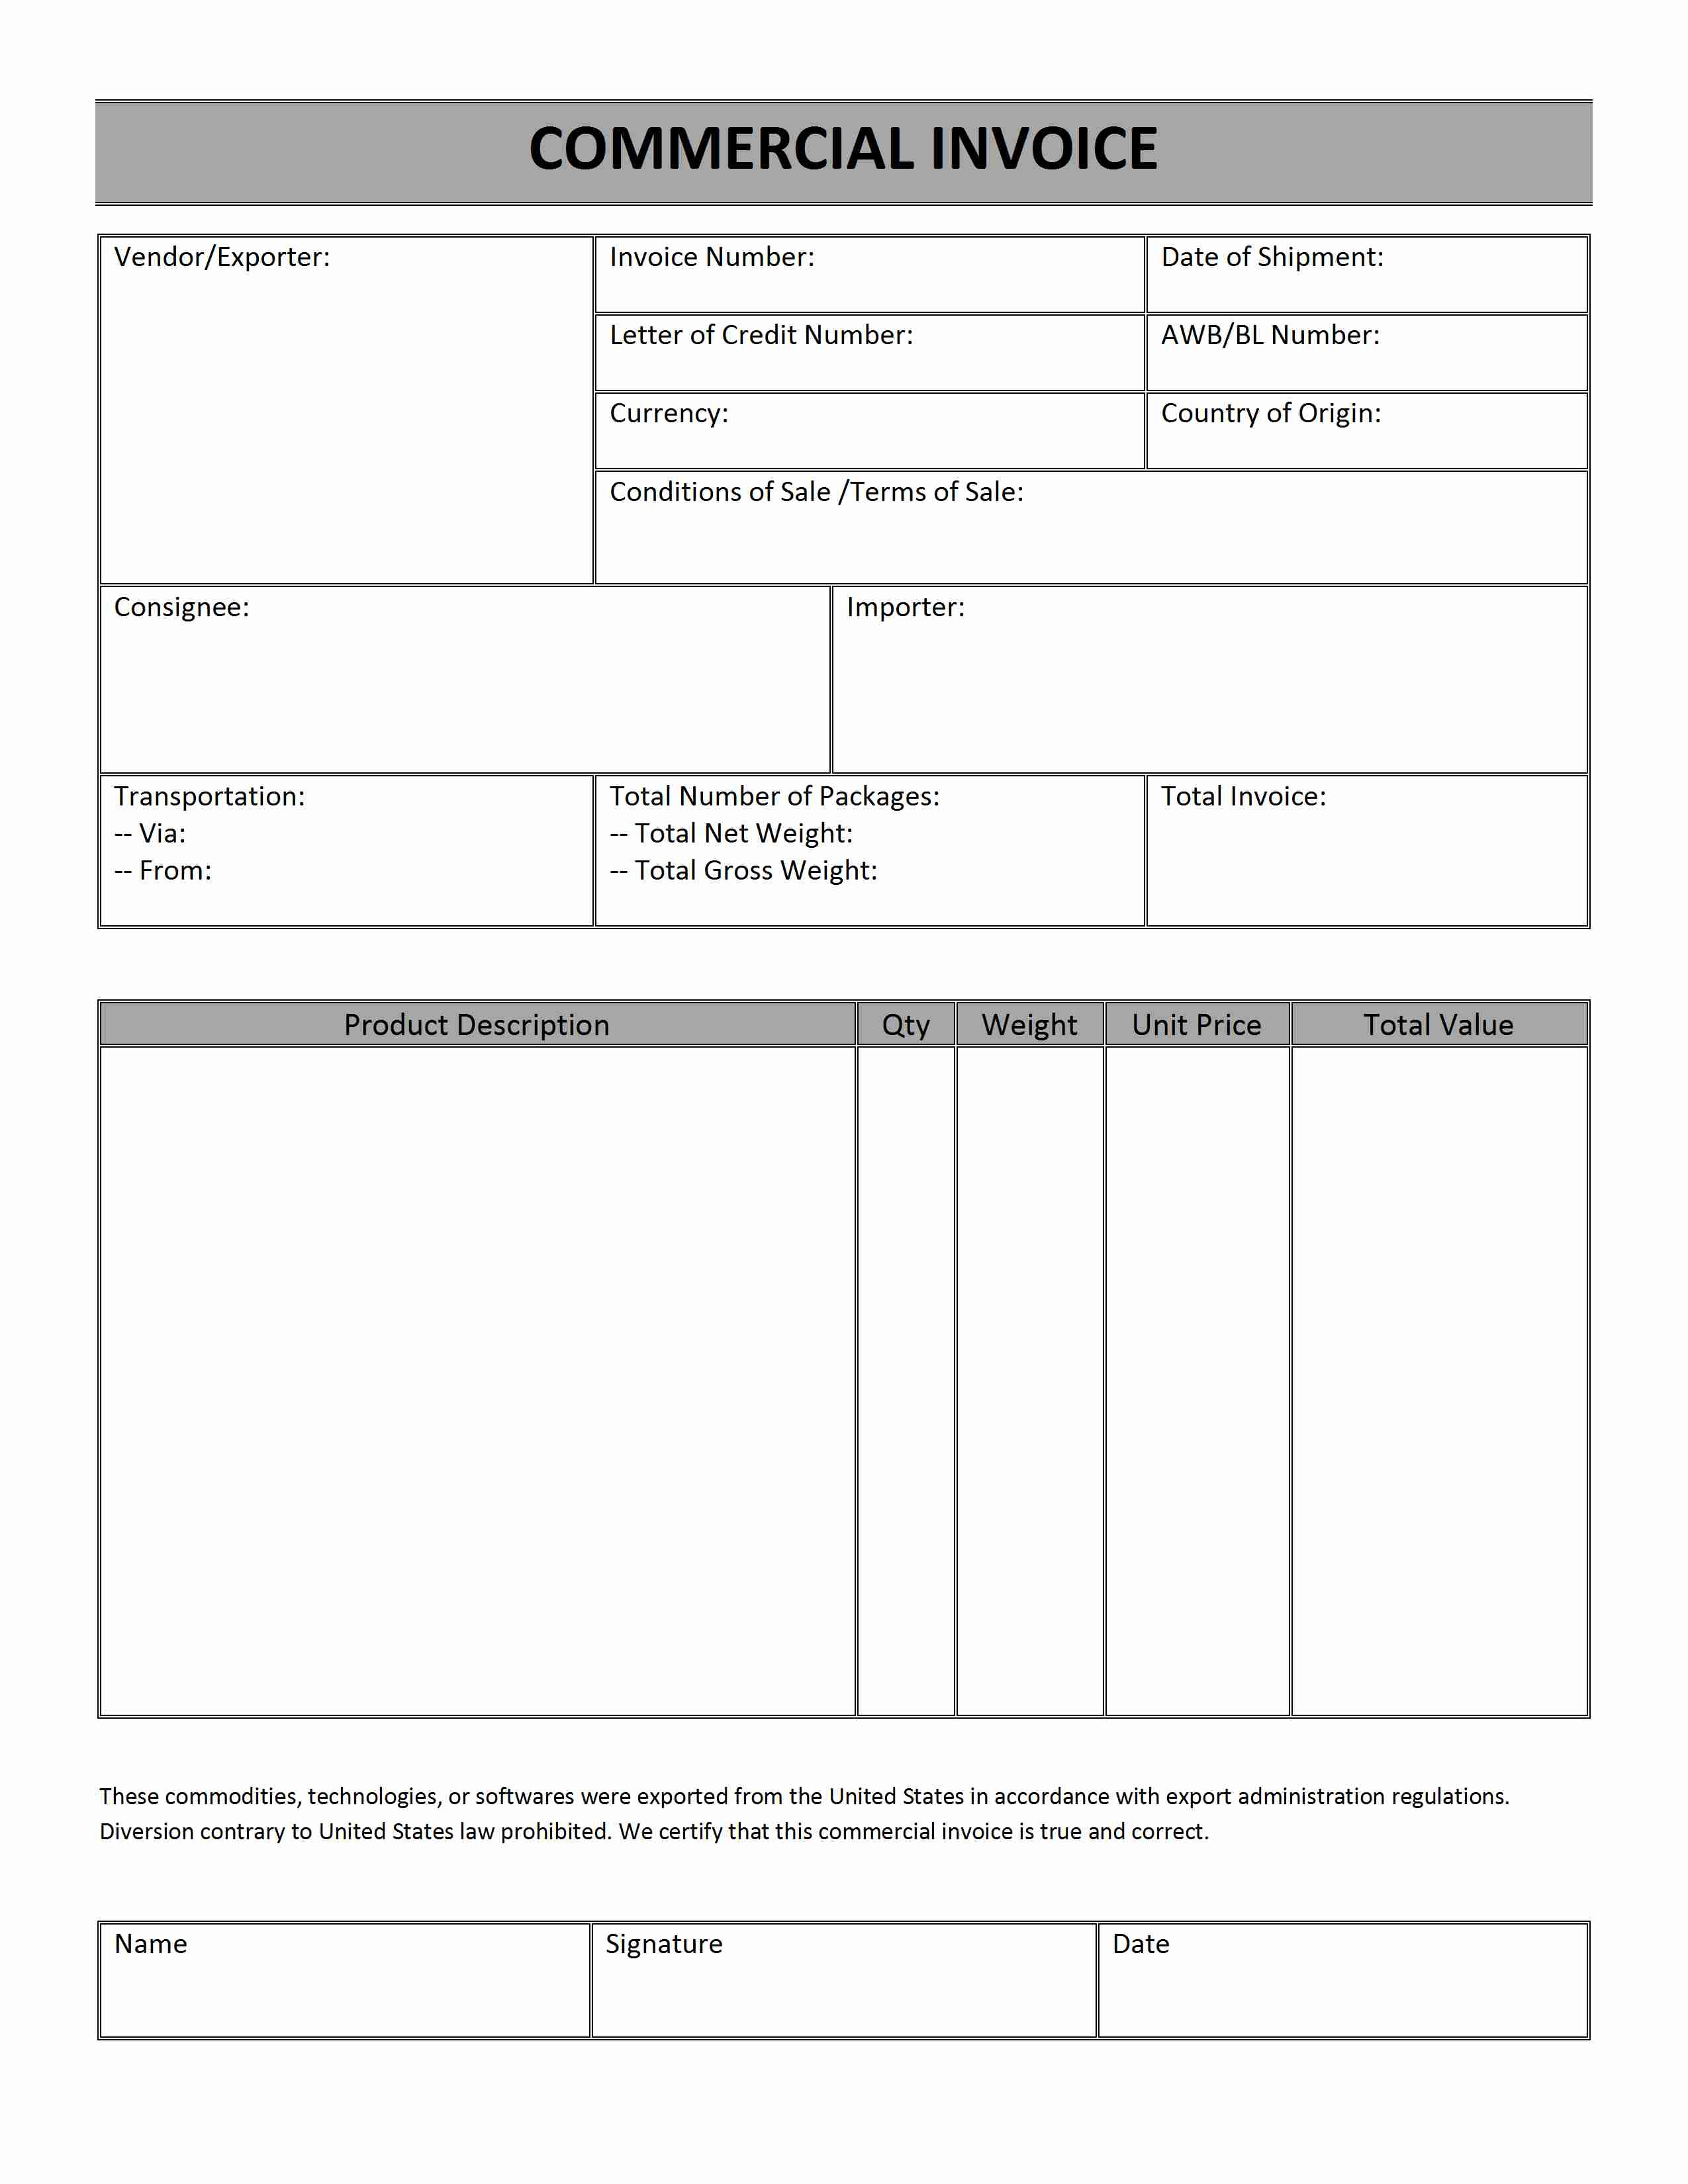 Hucareus  Pleasant Printable Sales Invoice Simple Invoice Form Free Invoice  With Goodlooking Printable Receipt Free  Free Printable Raffle Tickets  Receipt   Printable With Endearing Physical Therapy Invoice Template Also How To Write Payment Terms On Invoice In Addition Small Business Factoring Invoice And Over Invoicing And Under Invoicing As Well As Edifact Invoic Additionally Time And Material Invoice Template From Happytomco With Hucareus  Goodlooking Printable Sales Invoice Simple Invoice Form Free Invoice  With Endearing Printable Receipt Free  Free Printable Raffle Tickets  Receipt   Printable And Pleasant Physical Therapy Invoice Template Also How To Write Payment Terms On Invoice In Addition Small Business Factoring Invoice From Happytomco